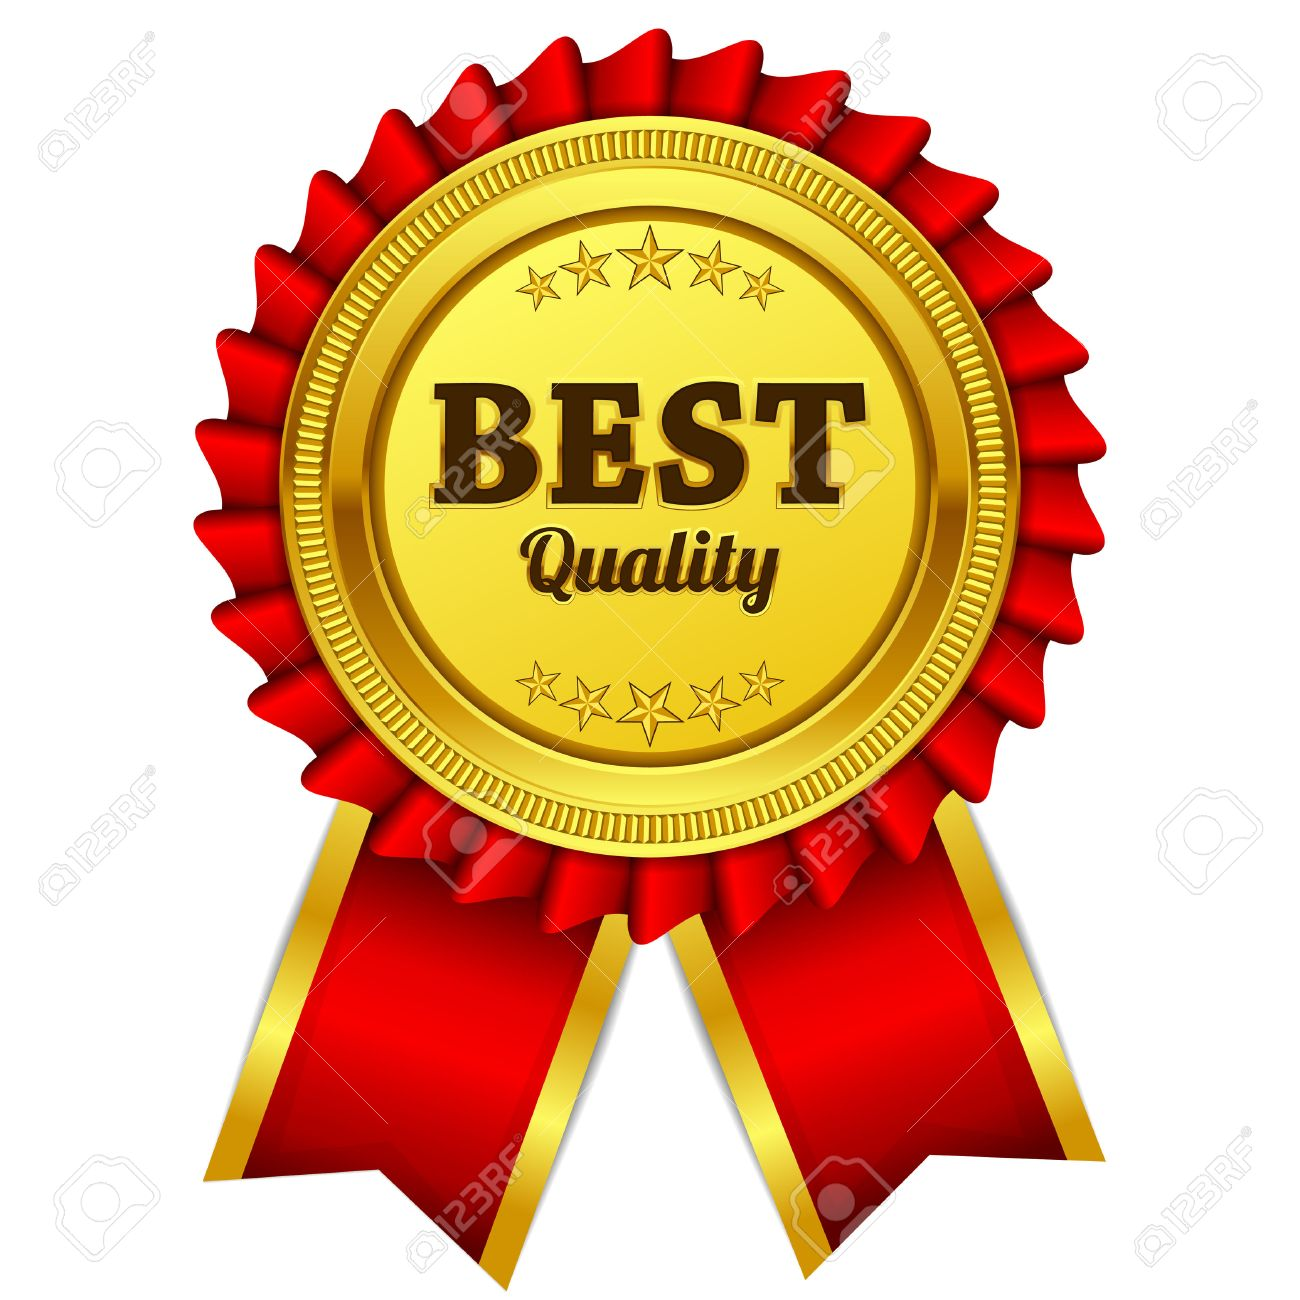 Best Quality Red Seal Label Icon Stock Vector 51291357